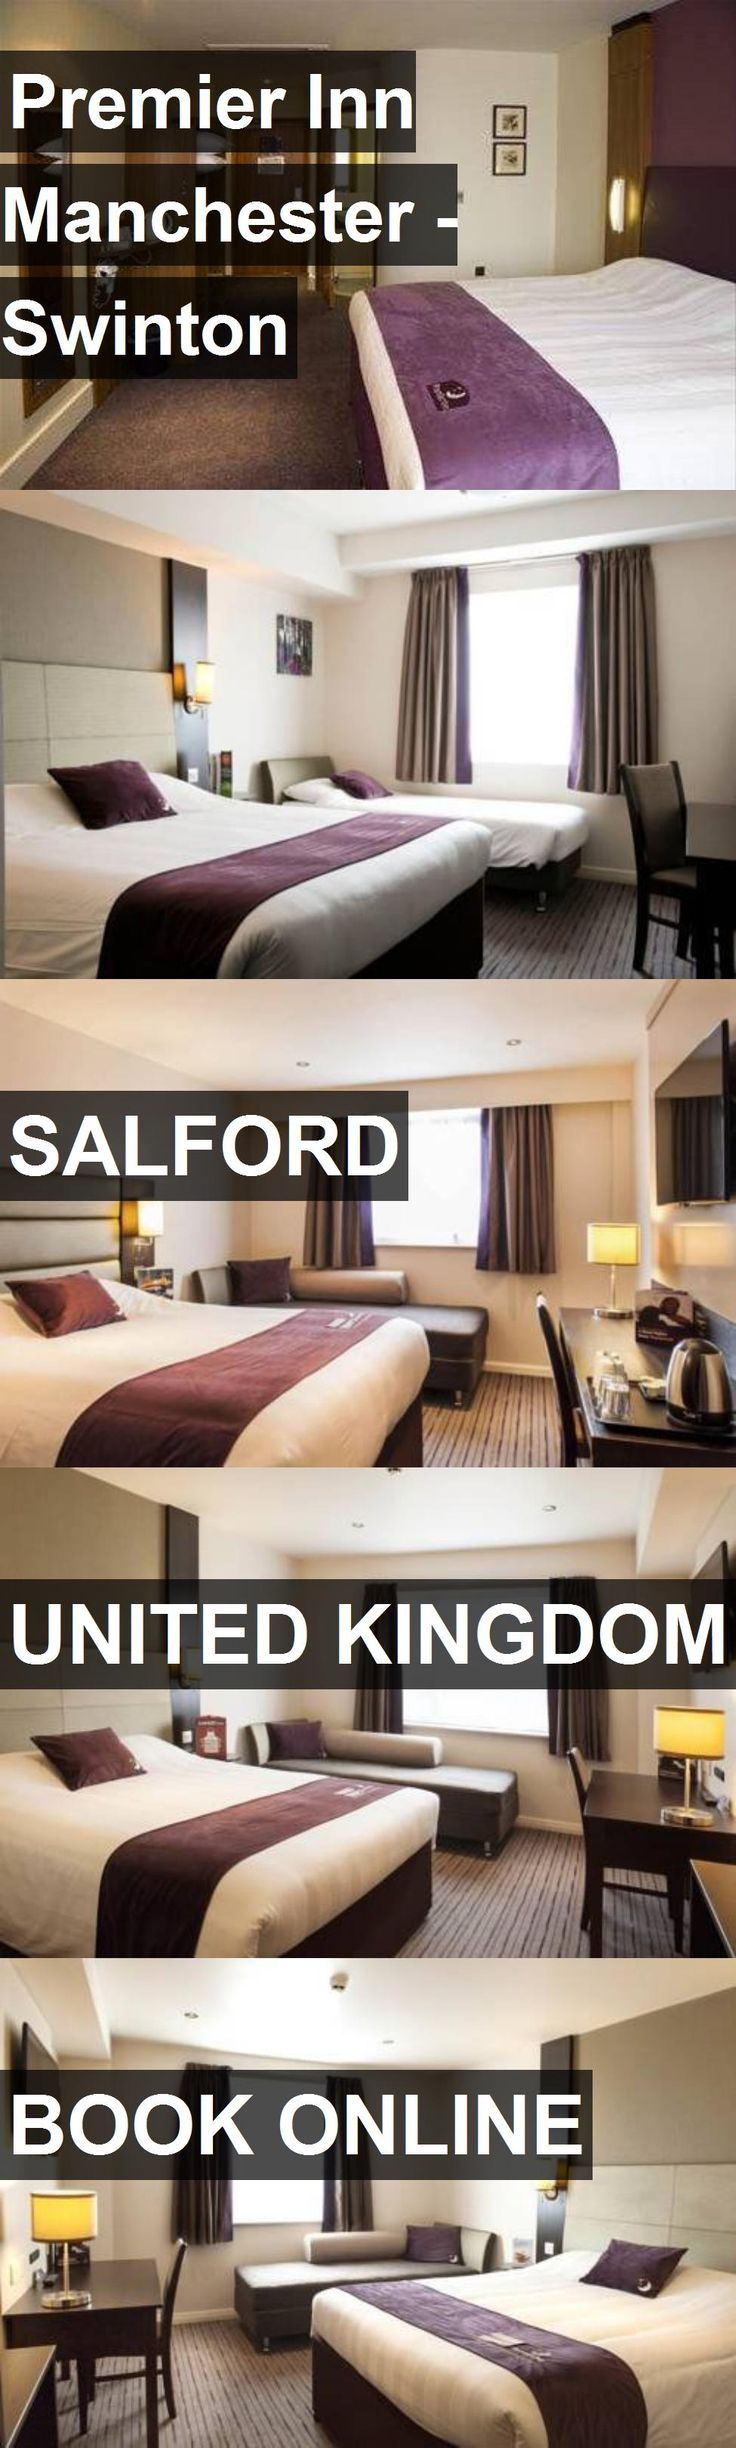 Hotel Premier Inn Manchester - Swinton in Salford, United Kingdom. For more information, photos, reviews and best prices please follow the link. #UnitedKingdom #Salford #hotel #travel #vacation